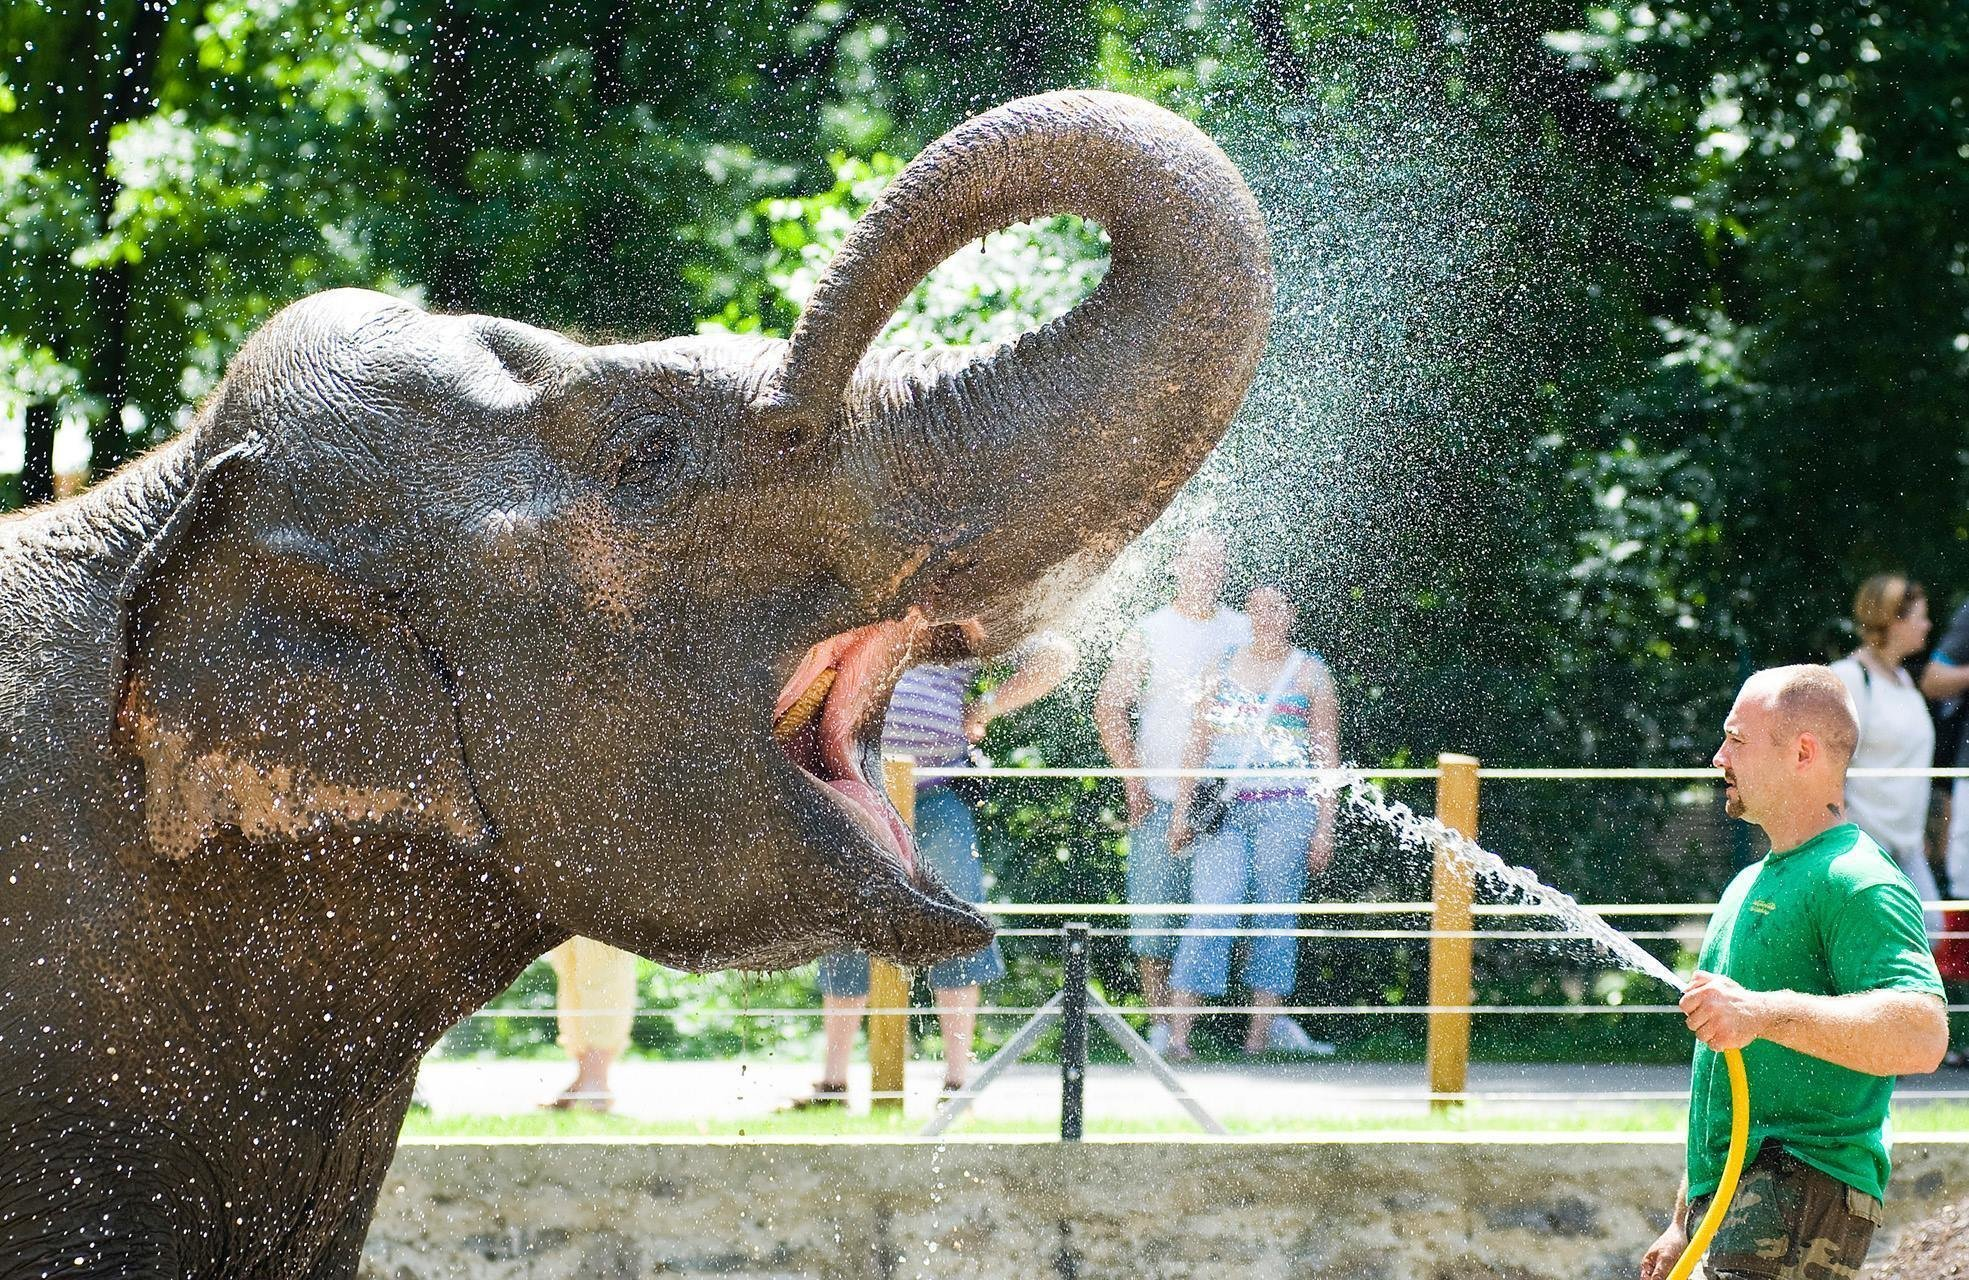 The zoo of Nyíregyháza wins 'Europe's best zoo' award in its category